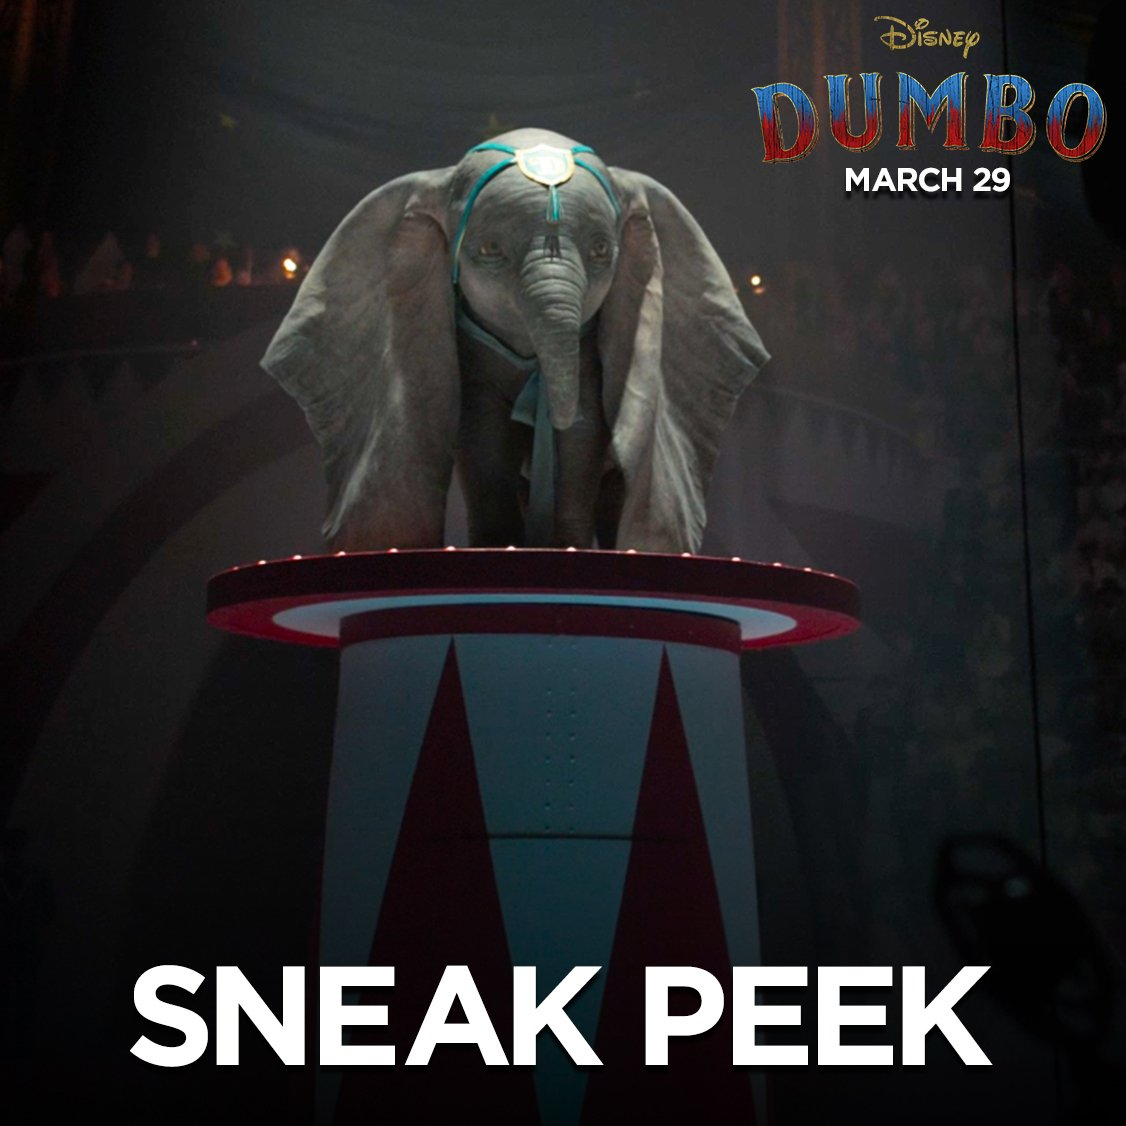 A showstopper you have to see to believe. Watch a brand new sneak peek of #Dumbo, and see the film in theatres March 29.